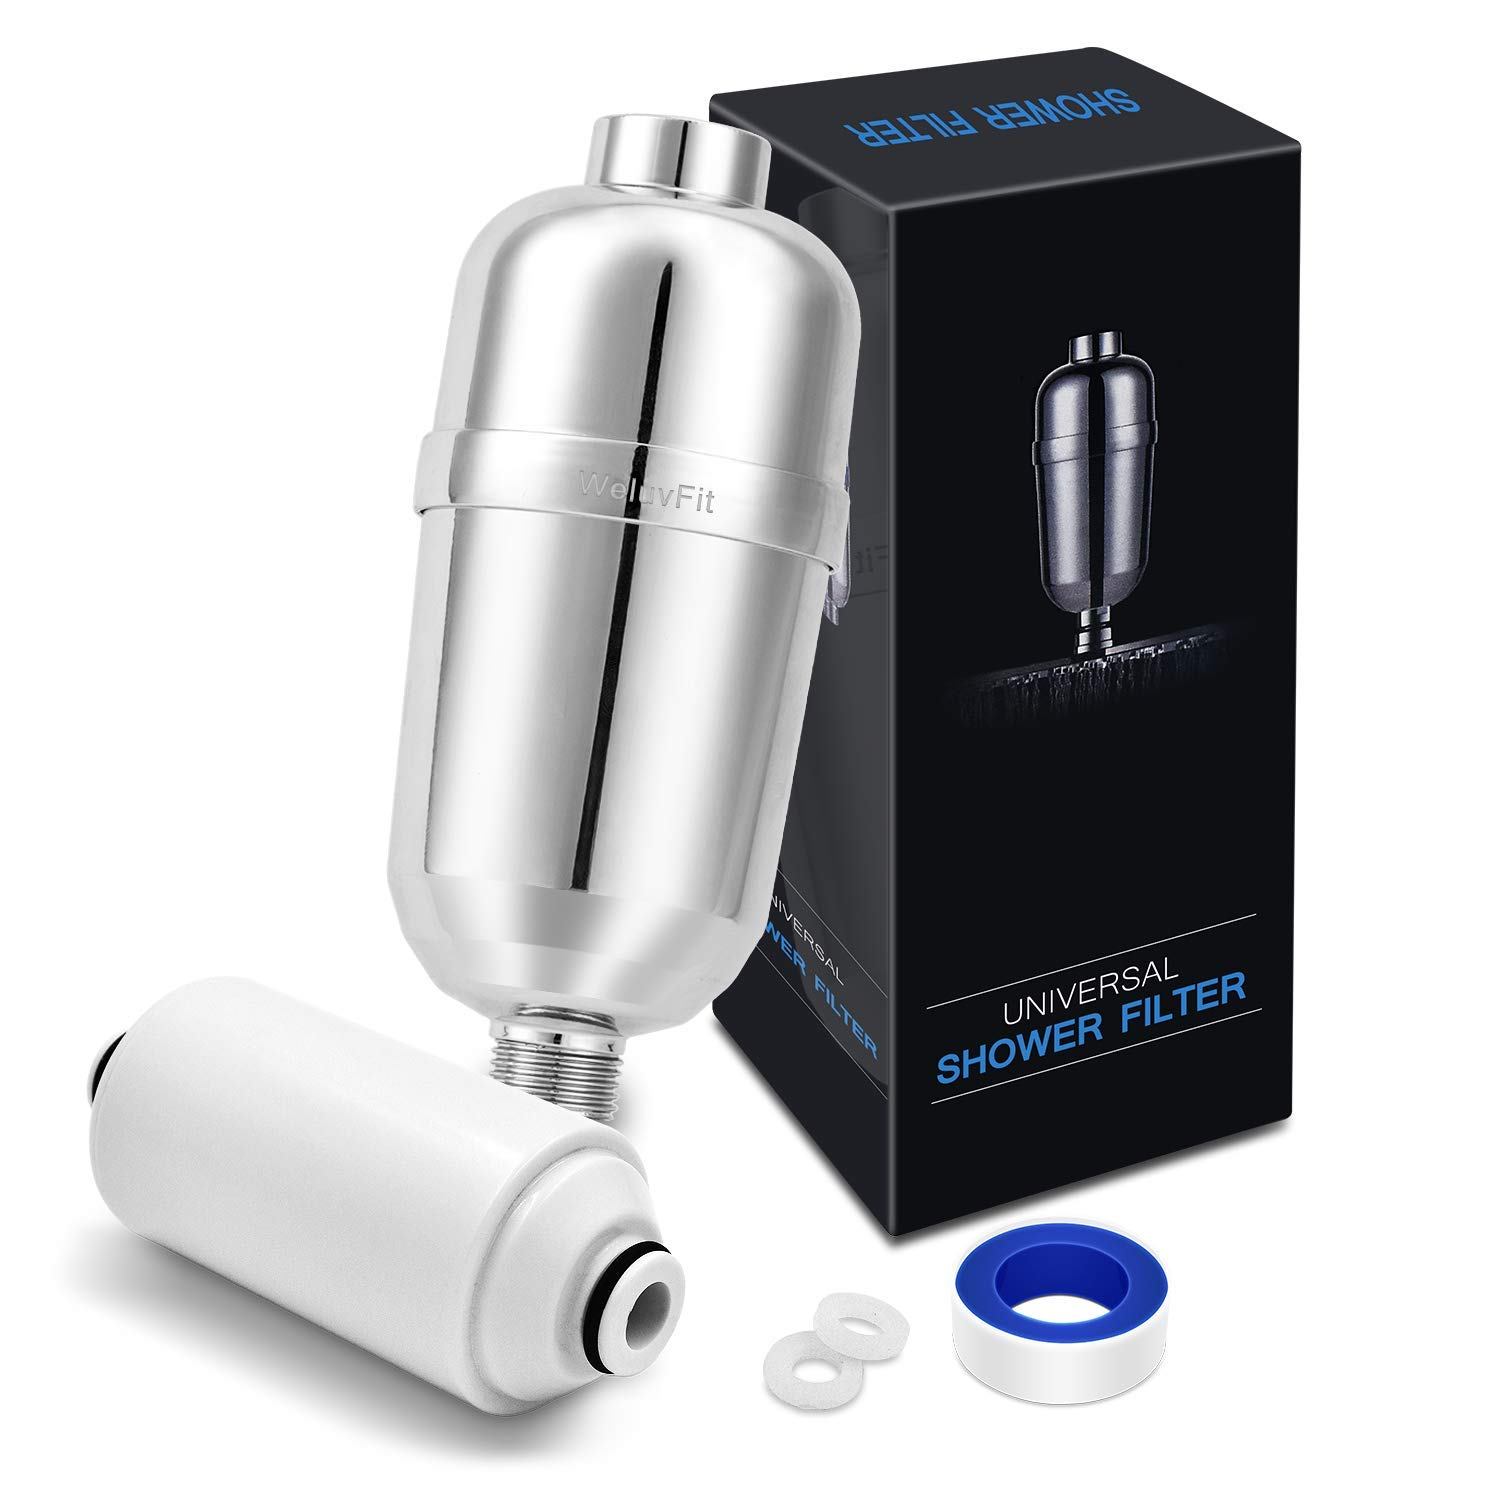 Shower Filter Hard Water Softener - 16 Stage High Output Universal Replacement Cartridges with Vitamin C Shower Filter - Removes Chlorine Fluoride Heavy Metals and Other Sediments